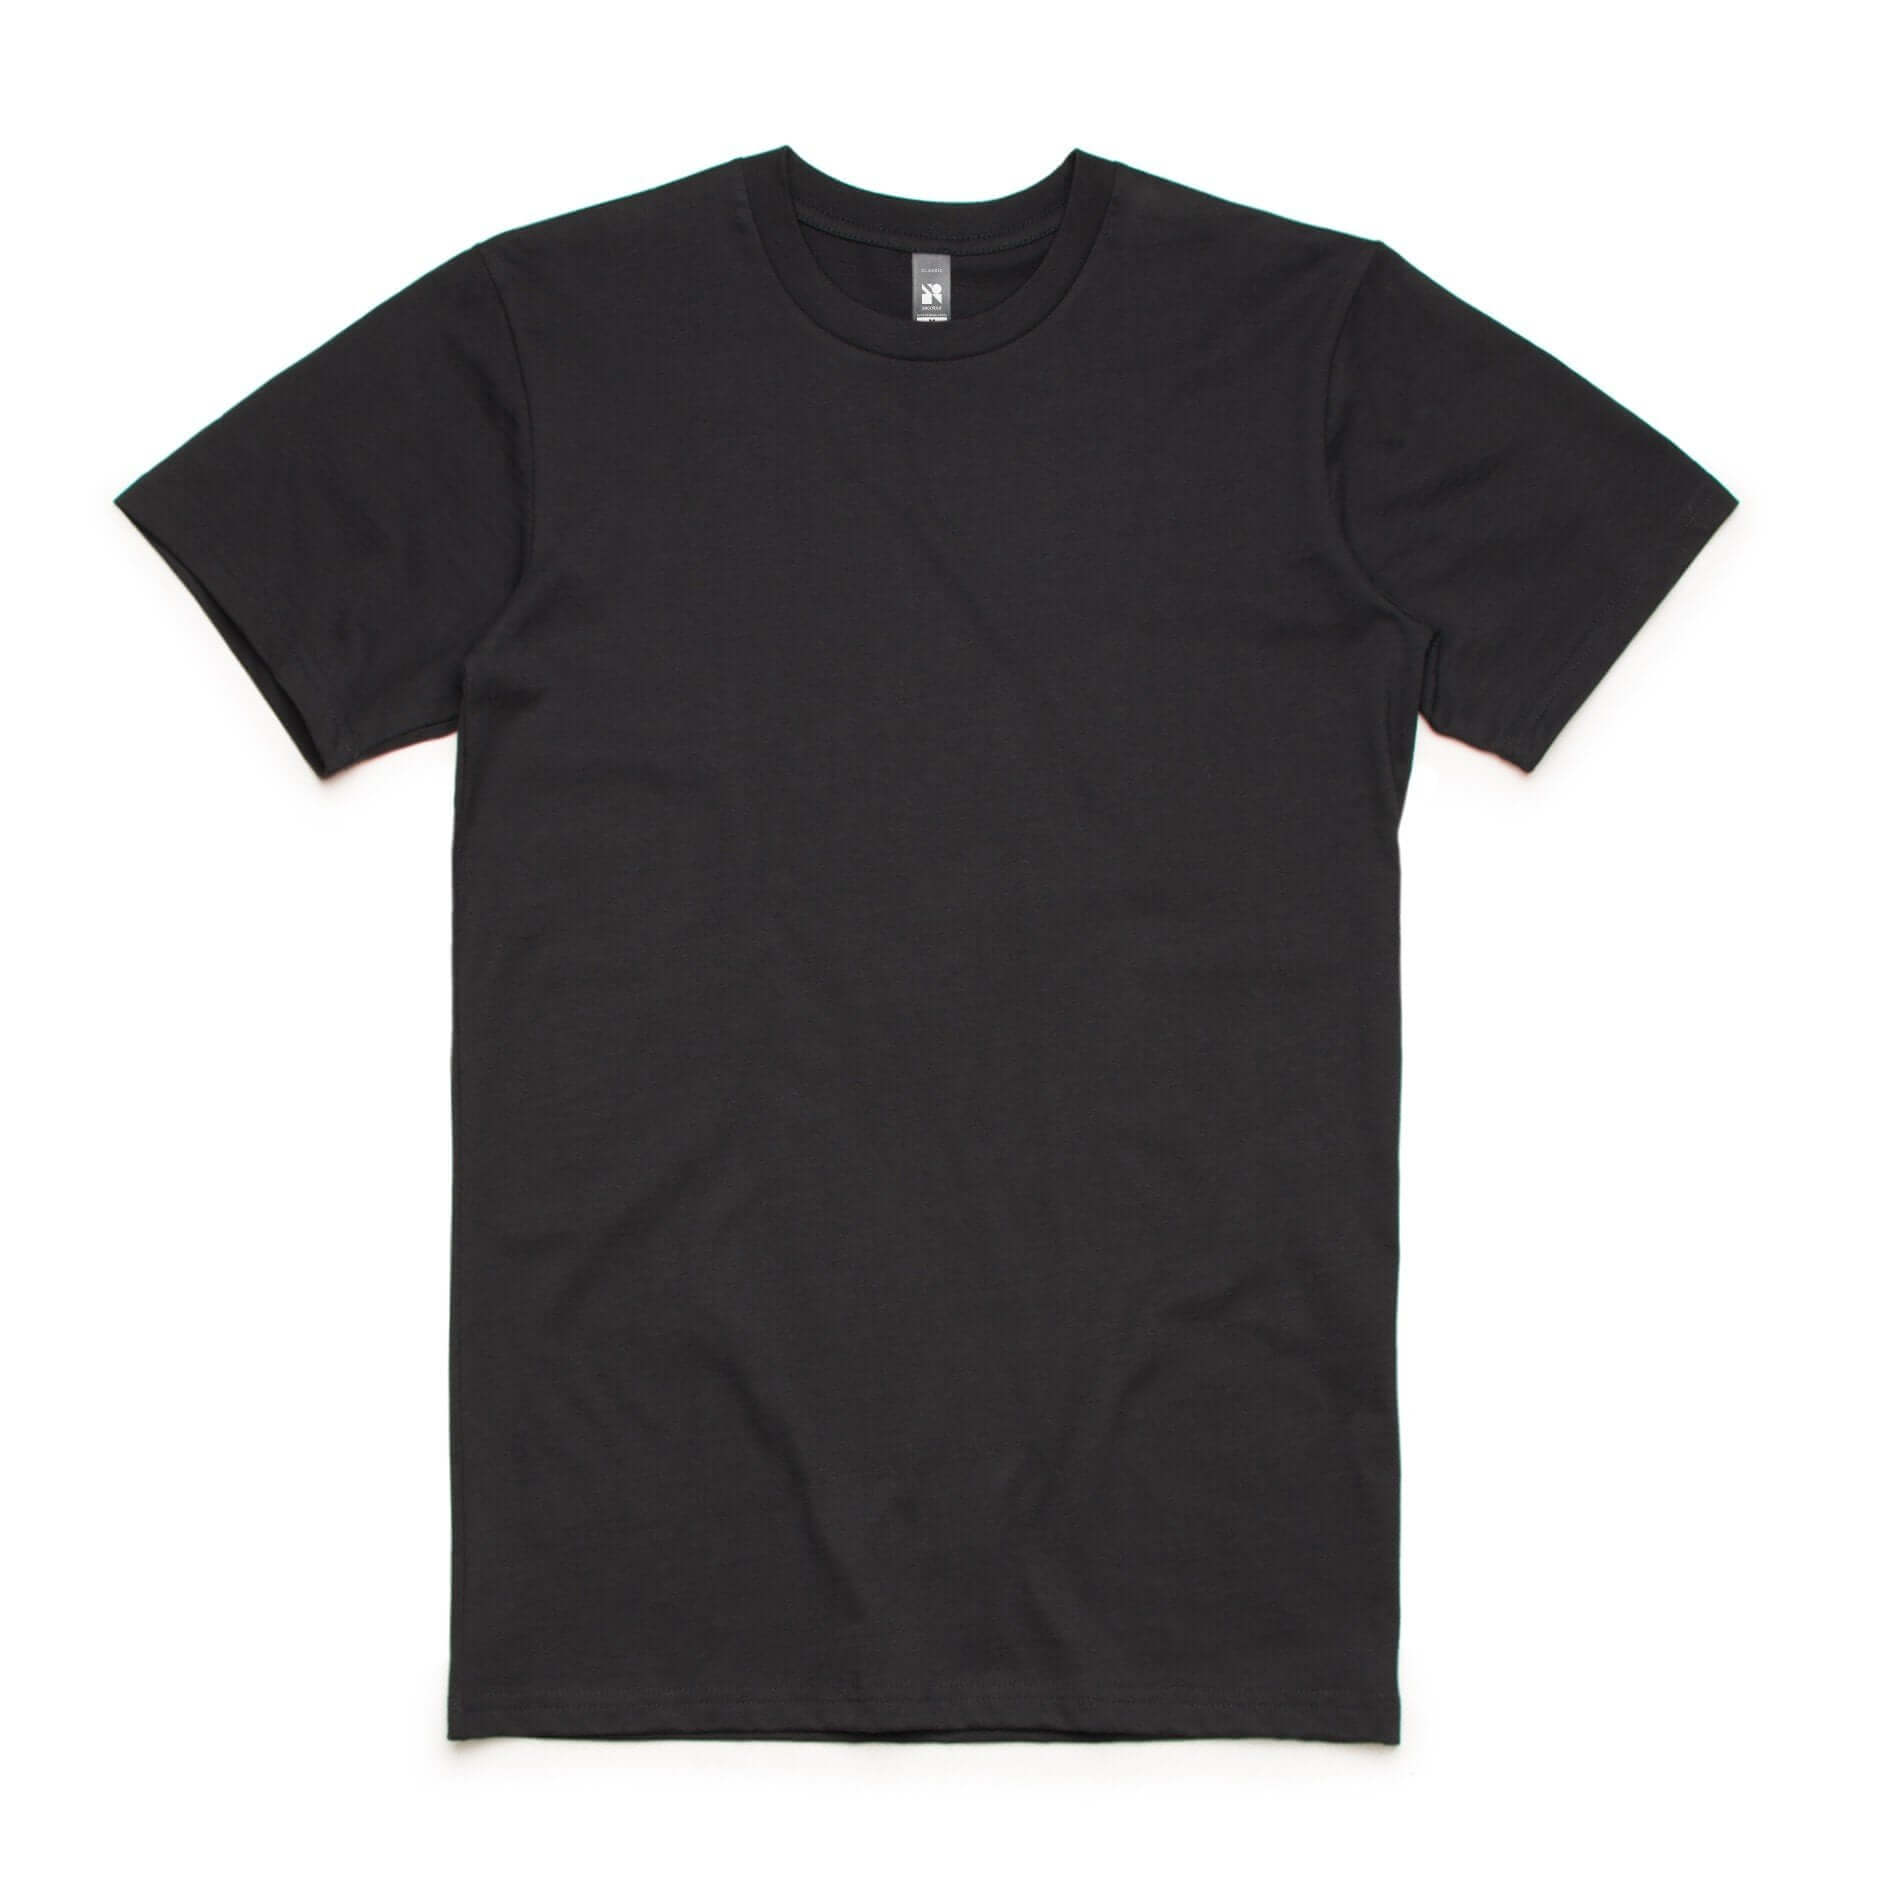 AS Colour CLASSIC TEE - Black